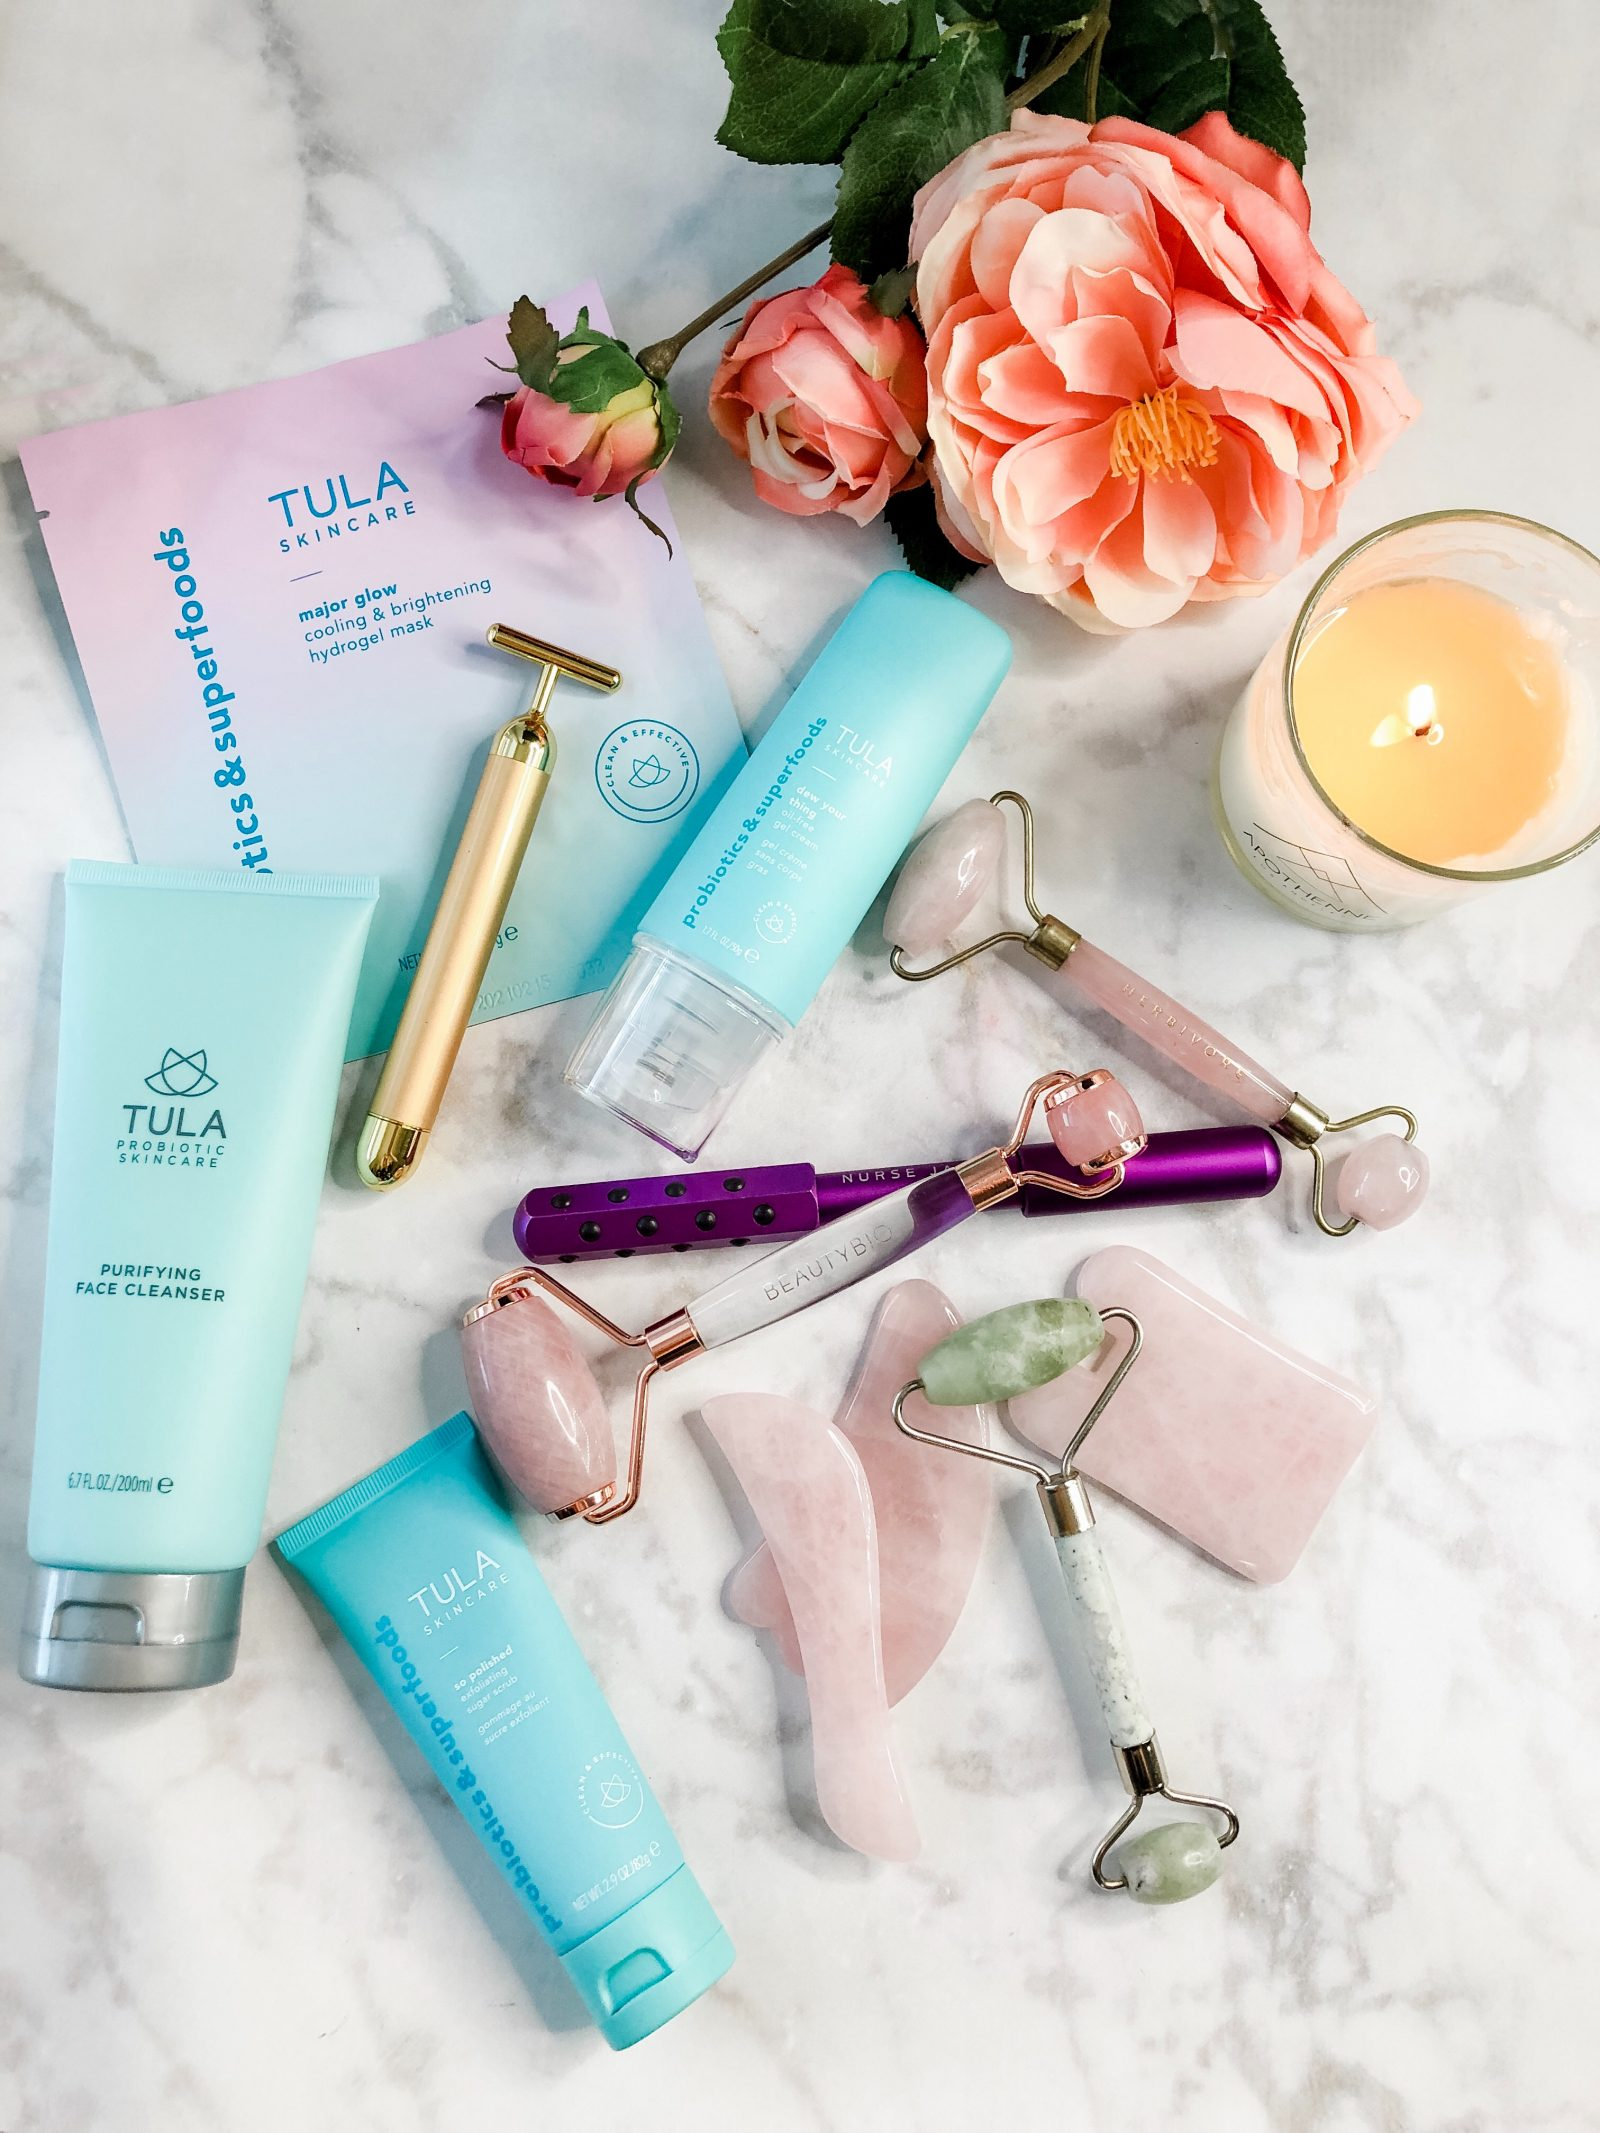 Wanting to try Facial Rollers, but not sure where to start? Beauty blogger Elly Brown breaks down everything you need to know about Facial Rollers!